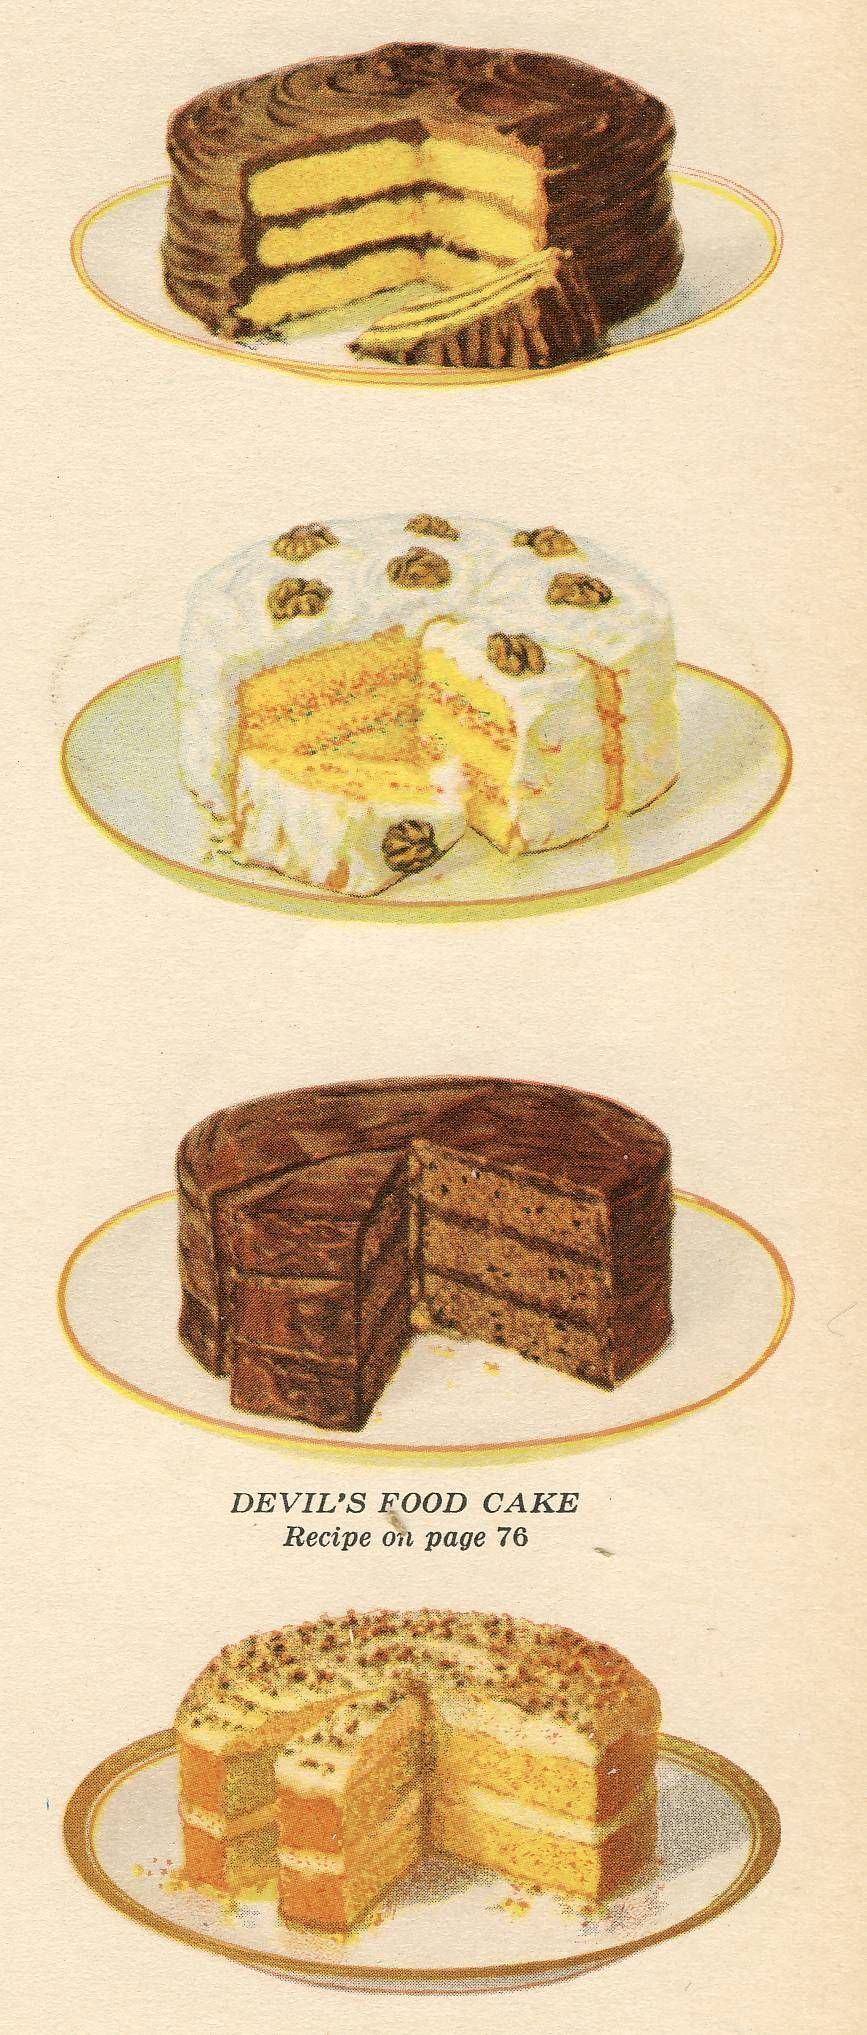 Printable - Cakes from an old cookbook